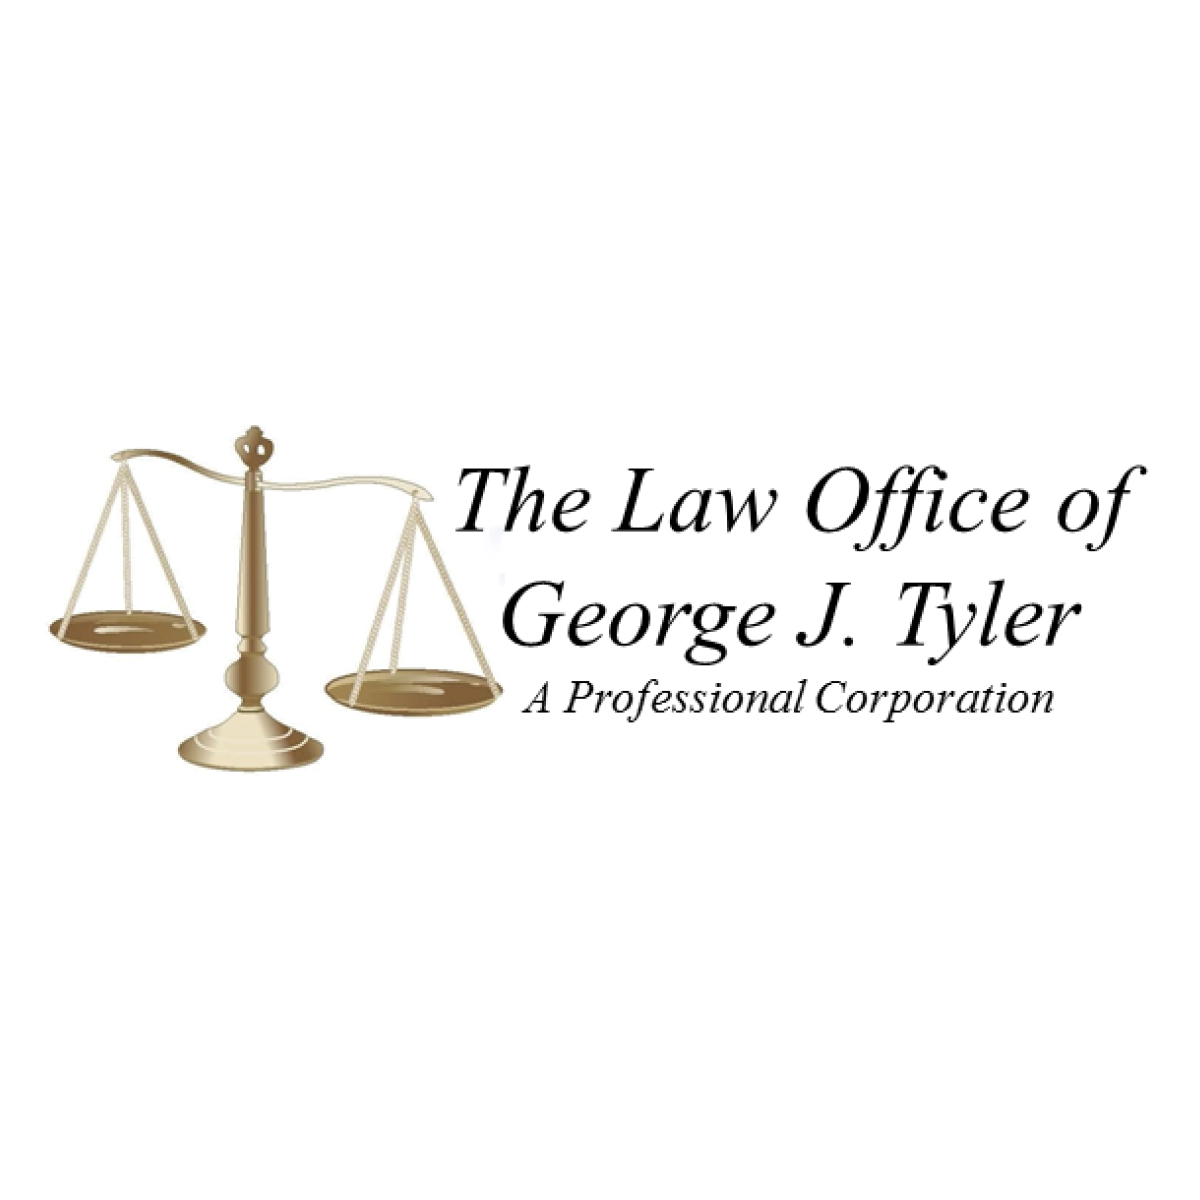 Law Office of George J. Tyler